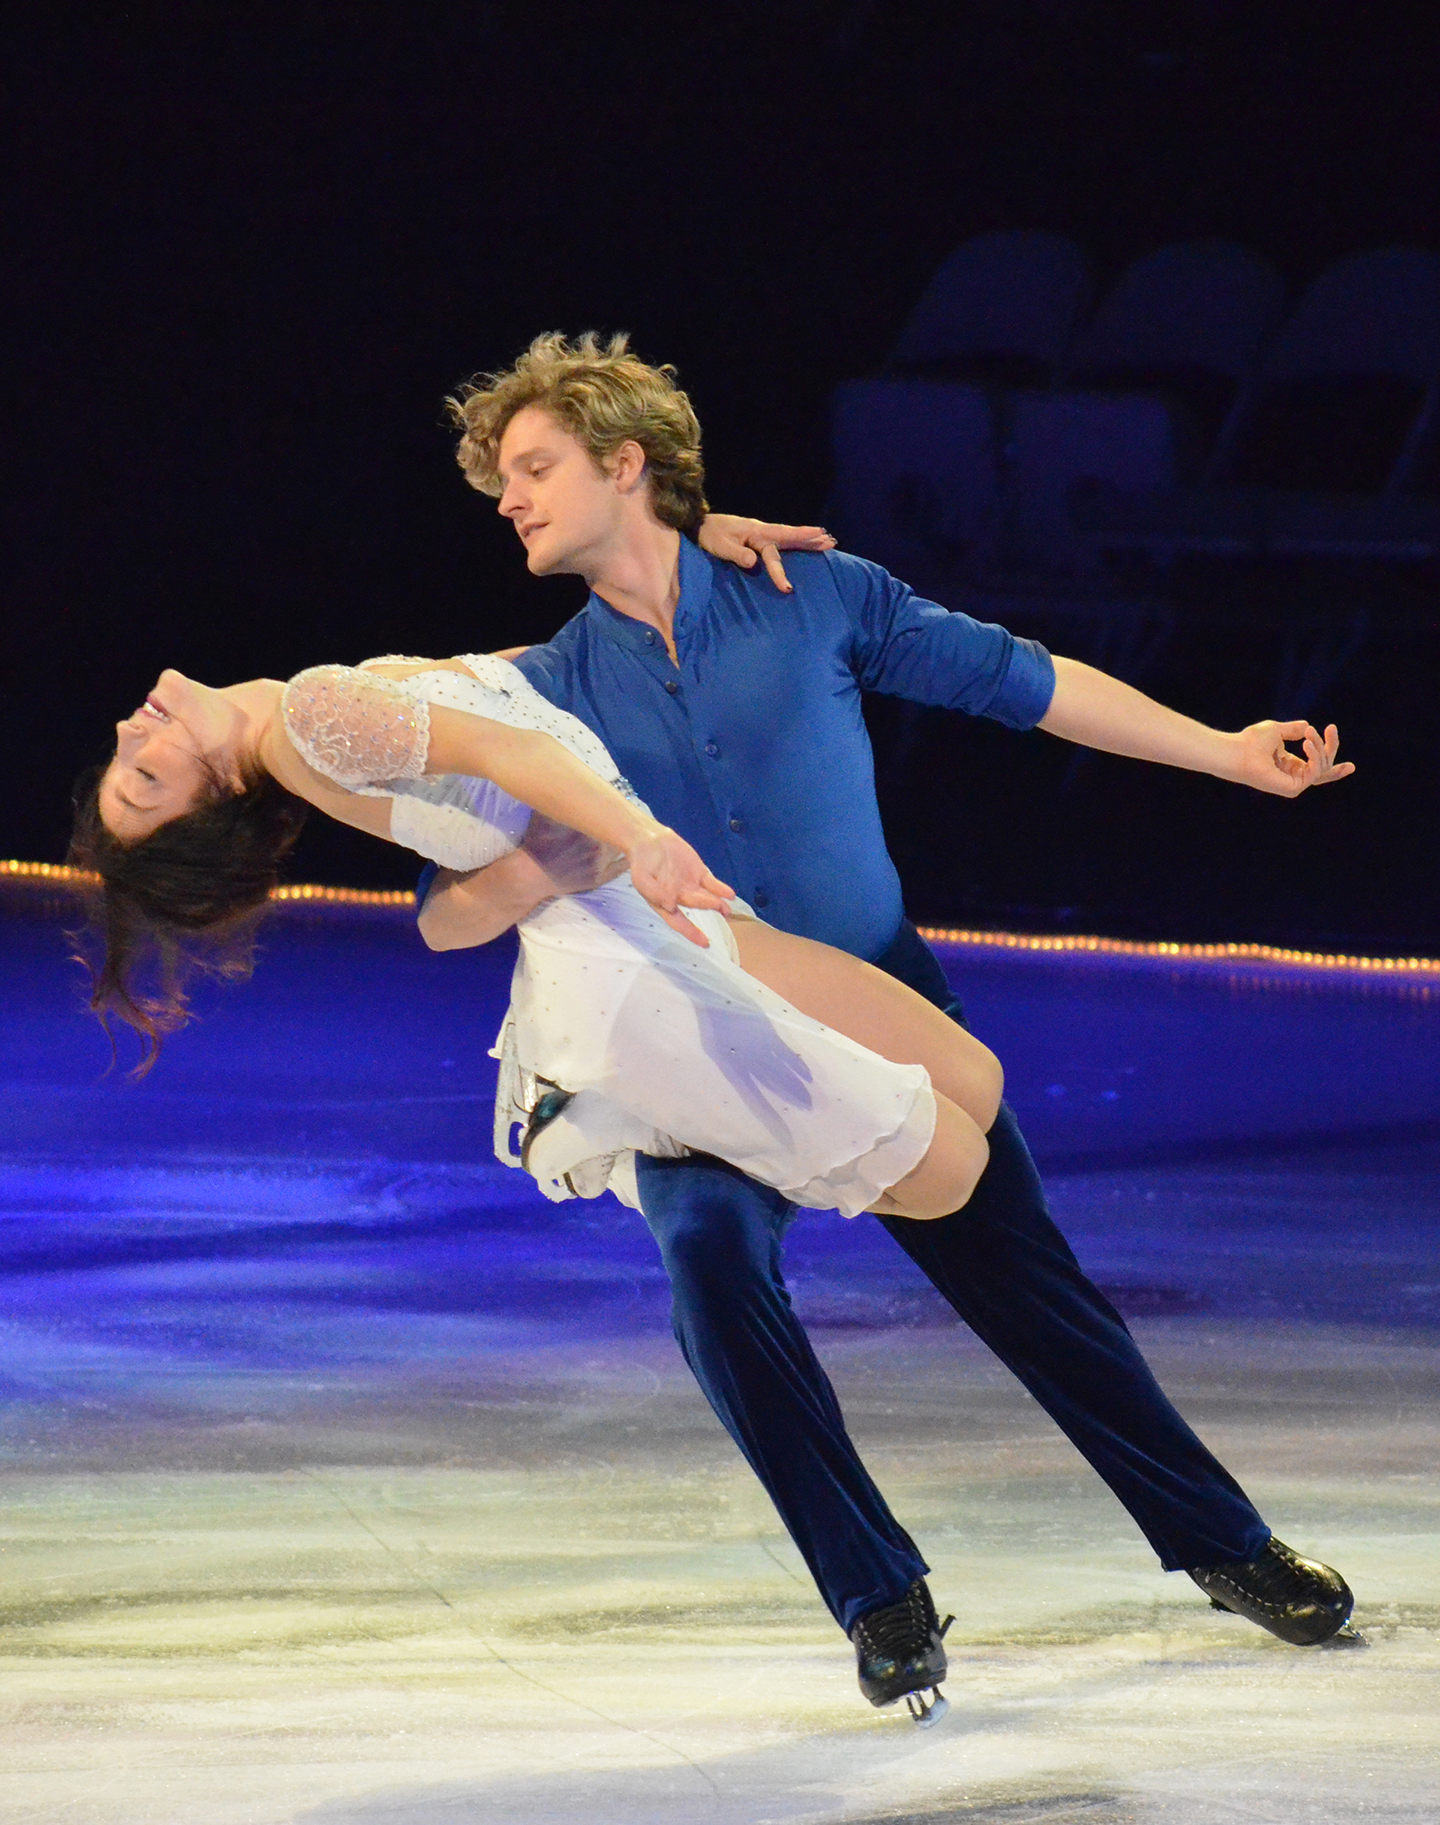 davis and white ice dancing are they dating